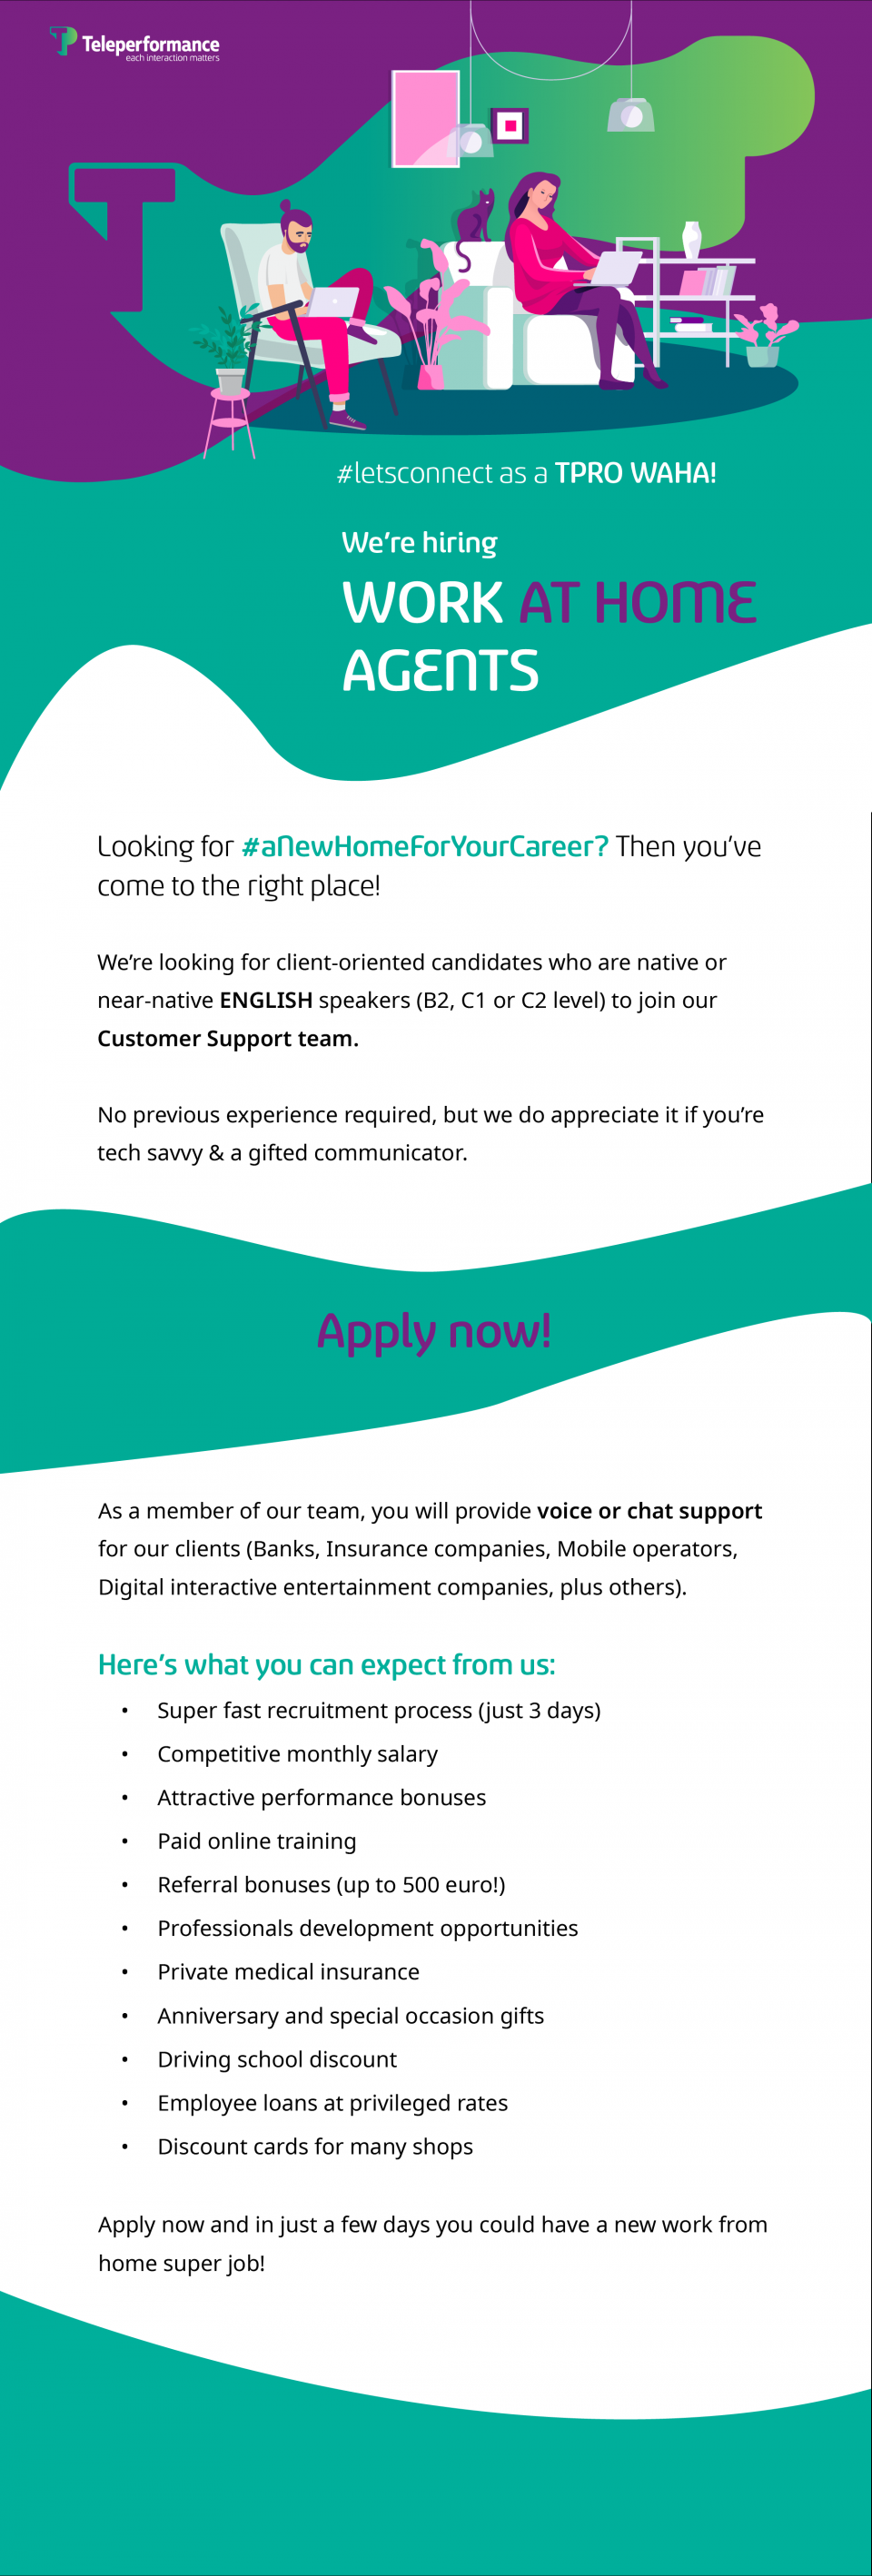 #letsconnect as a TPRO WAHA!  We're hiring Work AT HOME Agents Looking for #aNewHomeForYourCareer? Then you've come to the right place! We're looking for client-oriented candidates who are native or near-native ENGLISH speakers (B2, C1 or C2 level) to join our Customer Support team.  No previous experience required, but we do appreciate it if you're tech savvy & a gifted communicator. Apply now!  As a member of our team, you will provide voice or chat support for our clients (Banks, Insurance companies, Mobile operators, Digital interactive entertainment companies, plus others). Here's what you can expect from us: ➔ Super-fast recruitment process (just 3 days) ➔ Competitive monthly salary ➔ Attractive performance bonuses ➔ Paid online training ➔ Referral bonuses (up to 500 euro!) ➔ Professionals development opportunities ➔ Private medical insurance ➔ Anniversary and special occasion gifts ➔ Driving school discount ➔ Employee loans at privileged rates ➔ Discount cards for many shops Apply now and in just a few days you could have a new work from home super job!